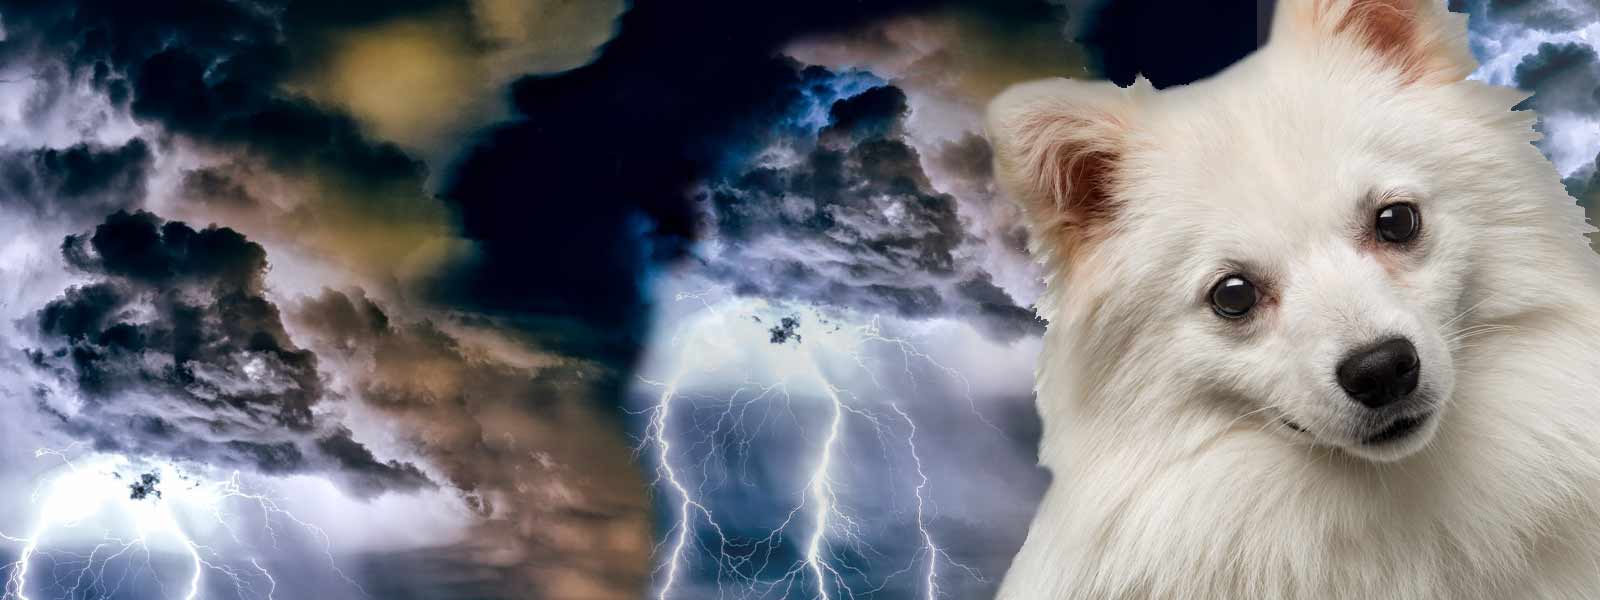 american eskimo dog afraid thunder